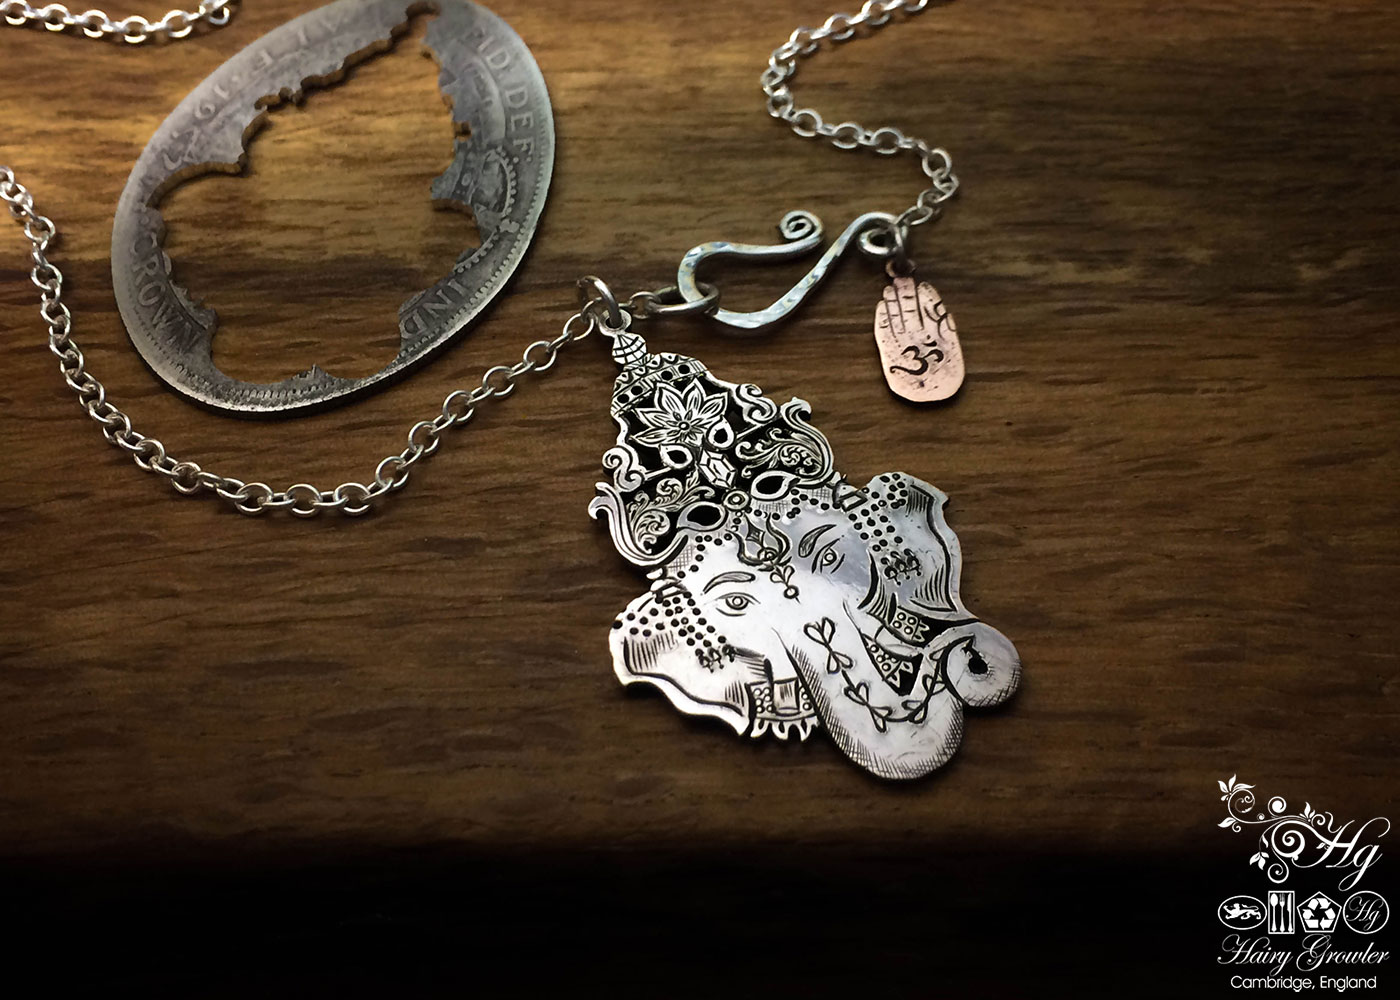 Ganesha silver pendant - handmade and recycled using silver coins